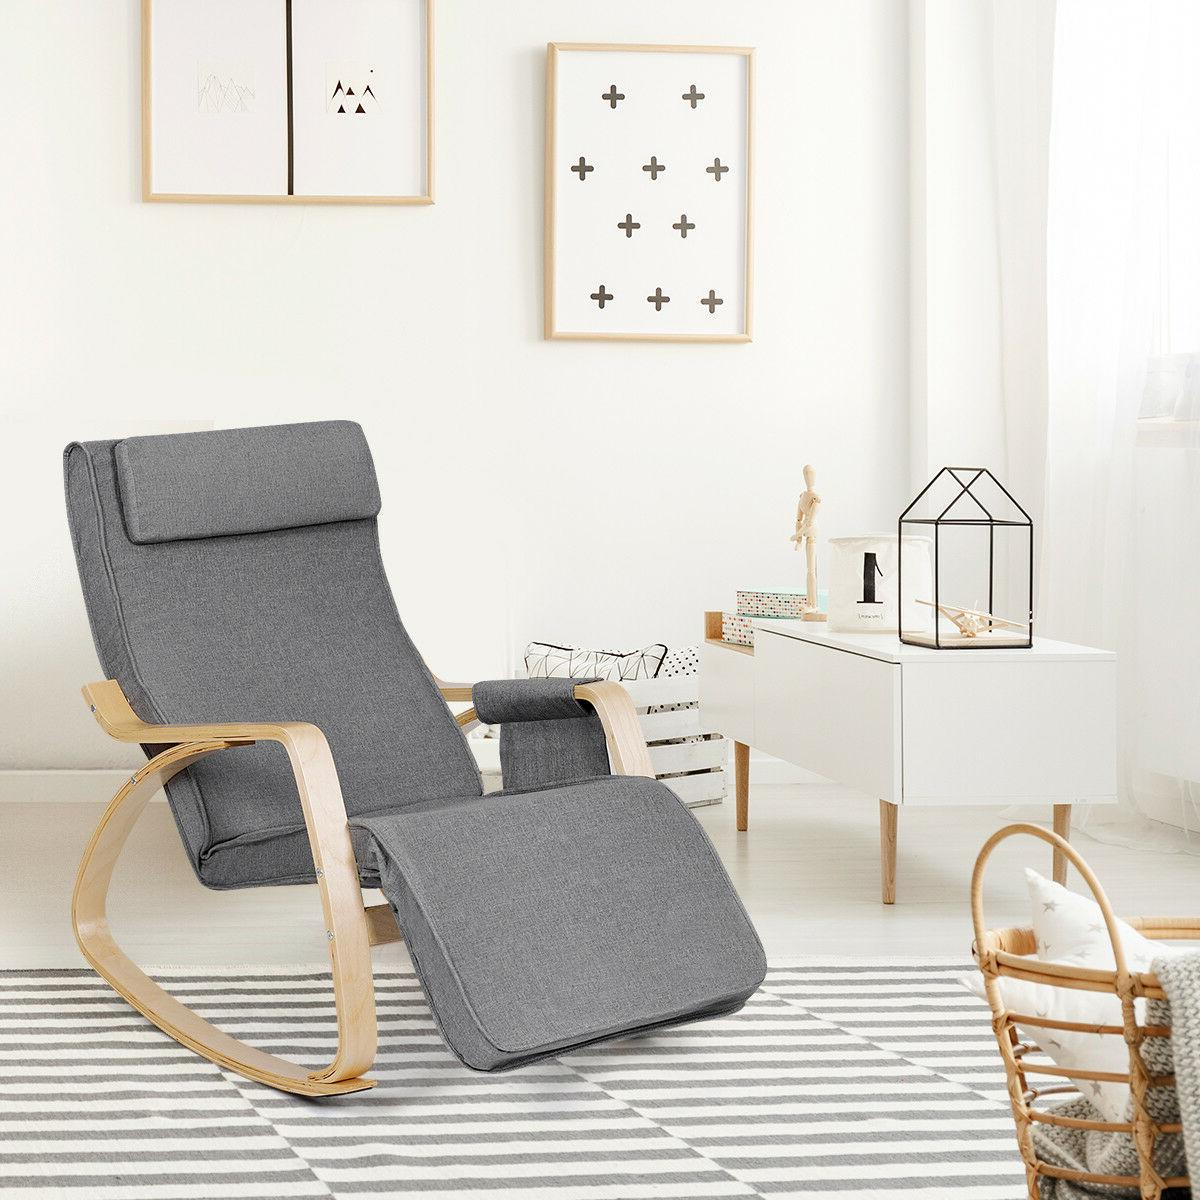 Rocking Realx Chair Rocker w/ Pillow